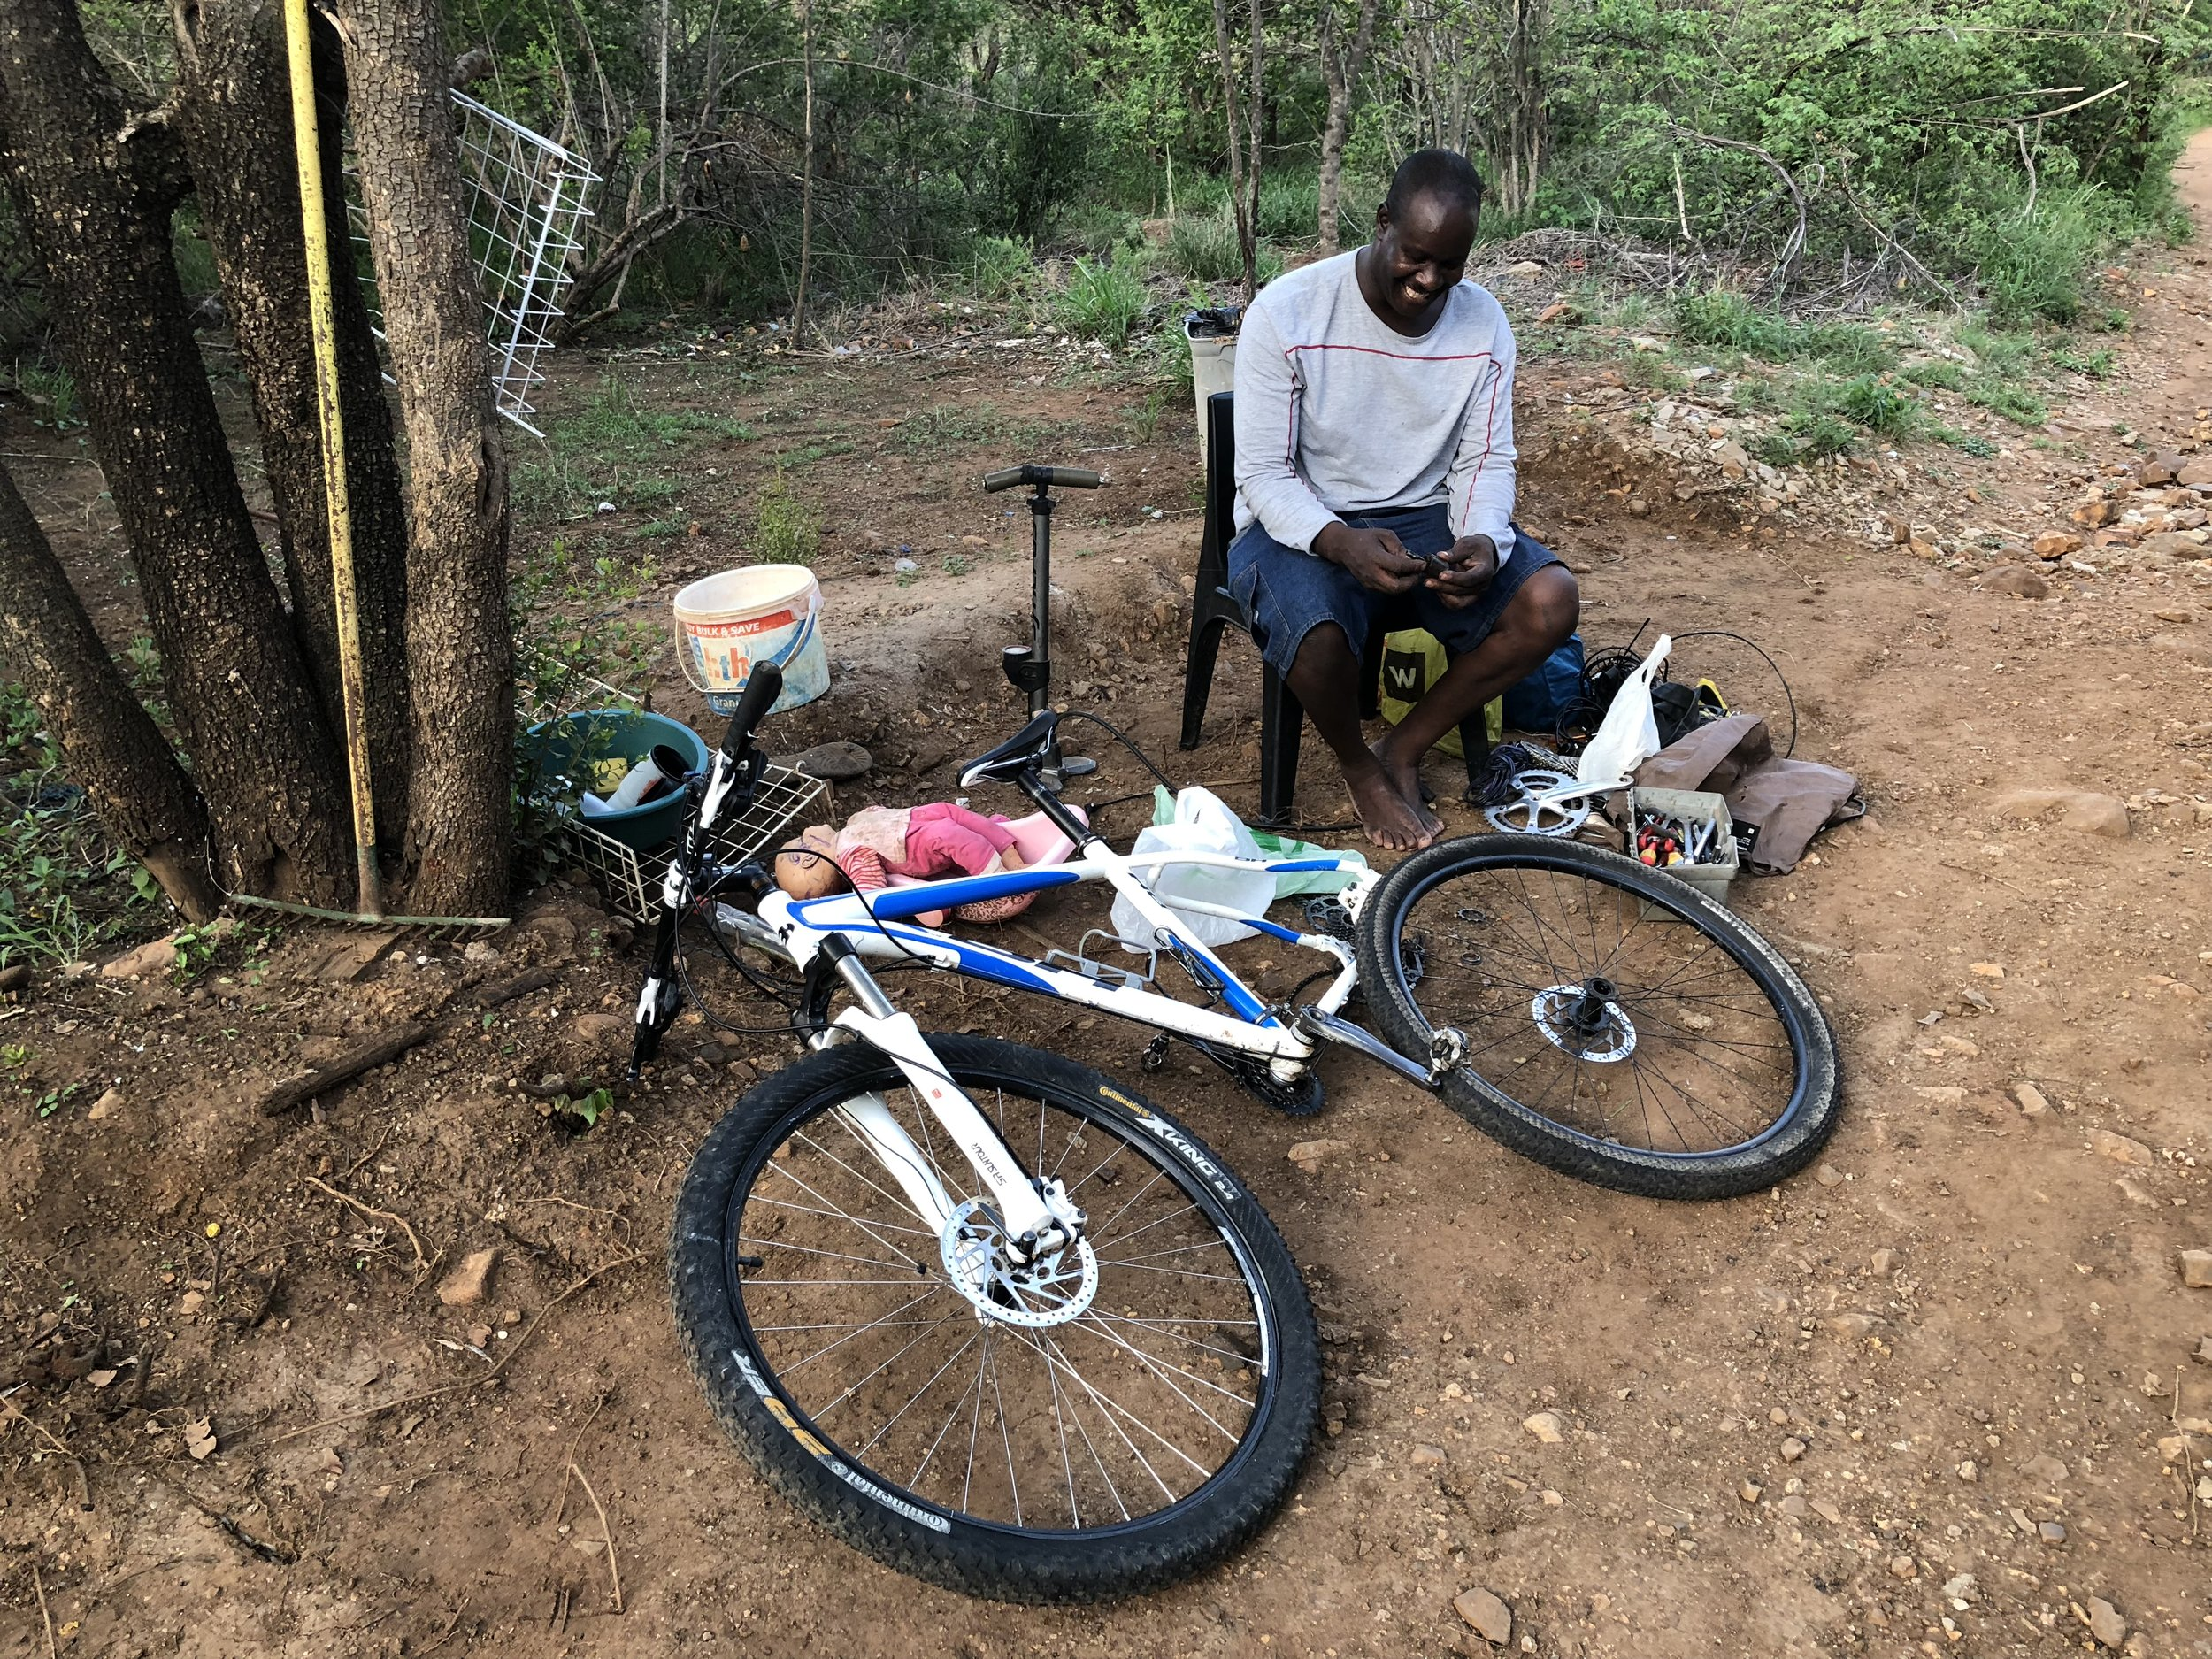 STAYING SUSTAINABLE - Teaching mechanics all around South Africa valuable skills in bicycle mechanics helps keep the projects going beyond our initial donations.